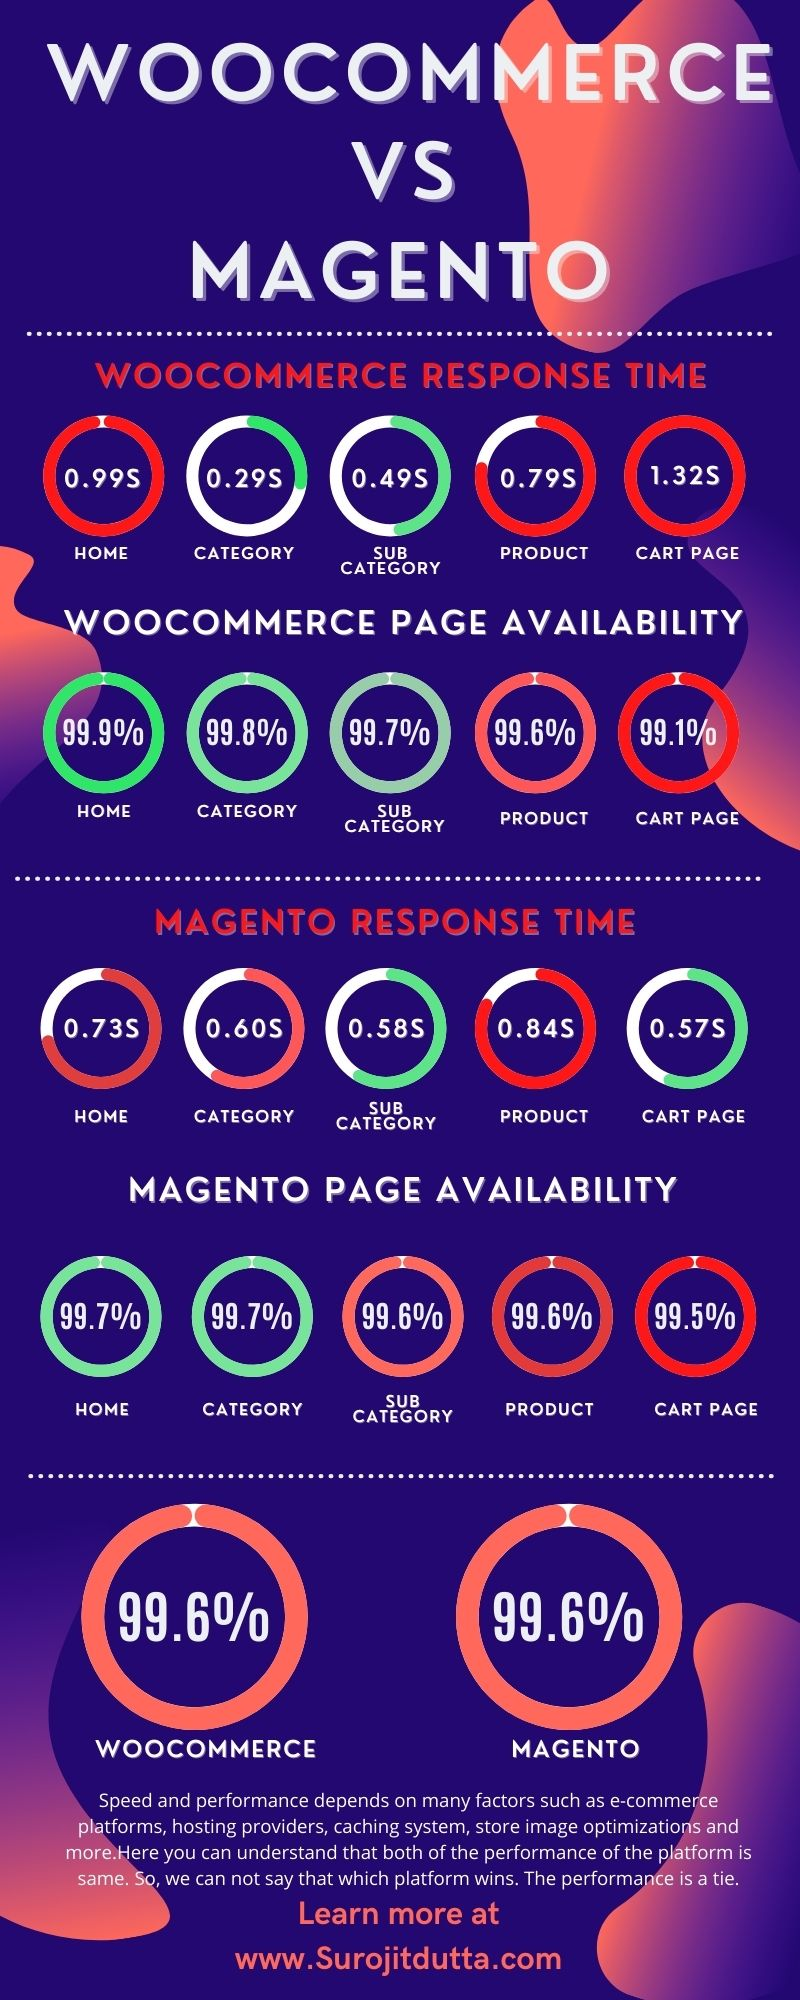 Woocommerce Vs Magento: Speed And Performance